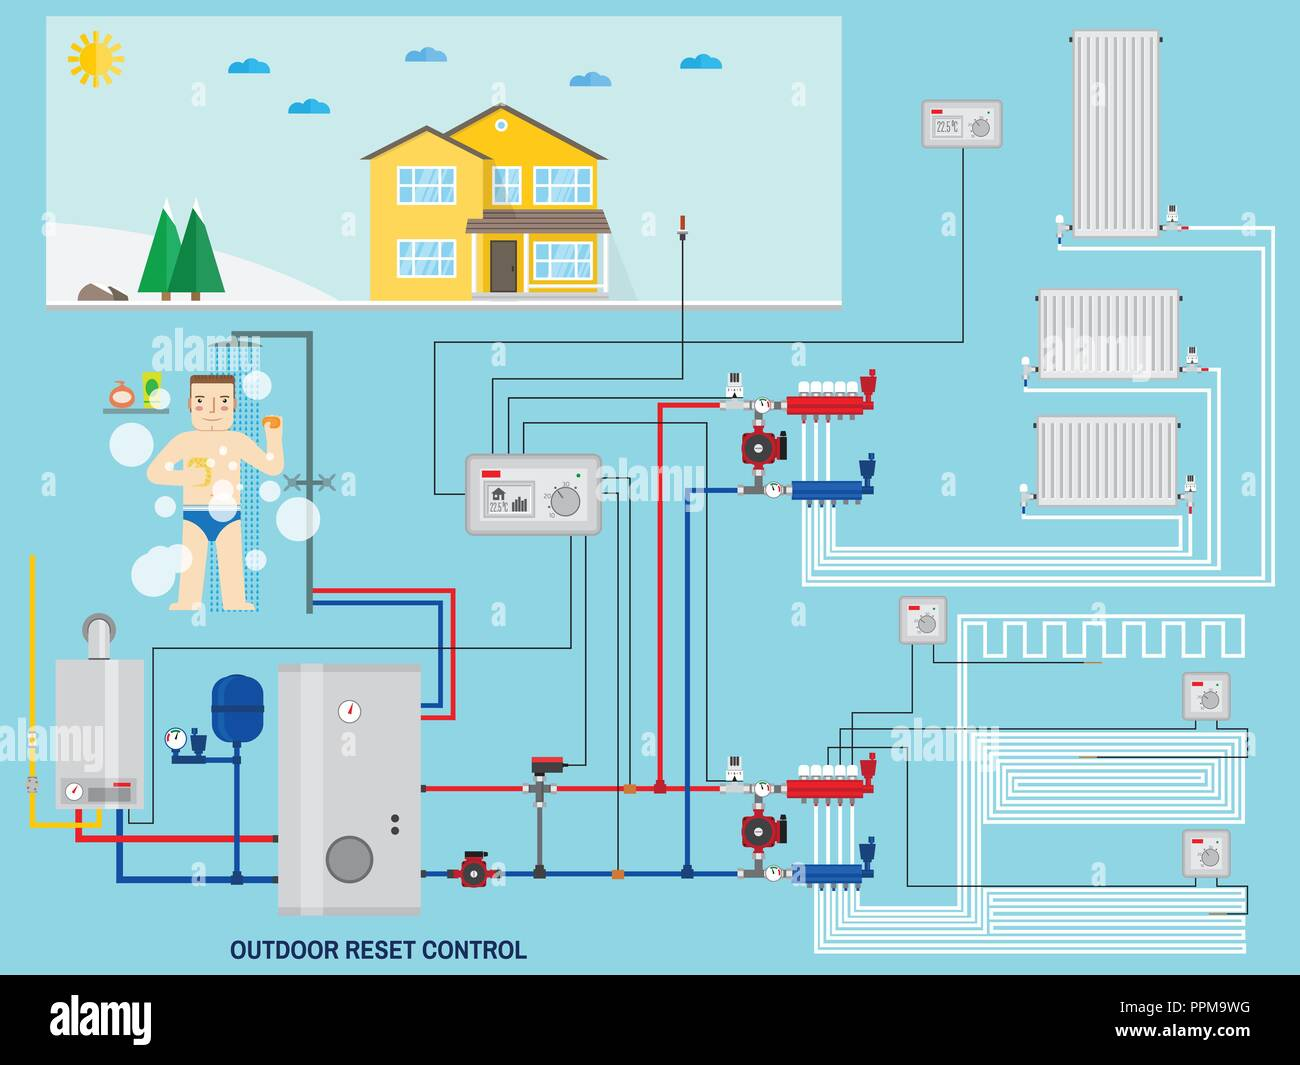 Floor Heating System Stock Photos & Floor Heating System Stock ...